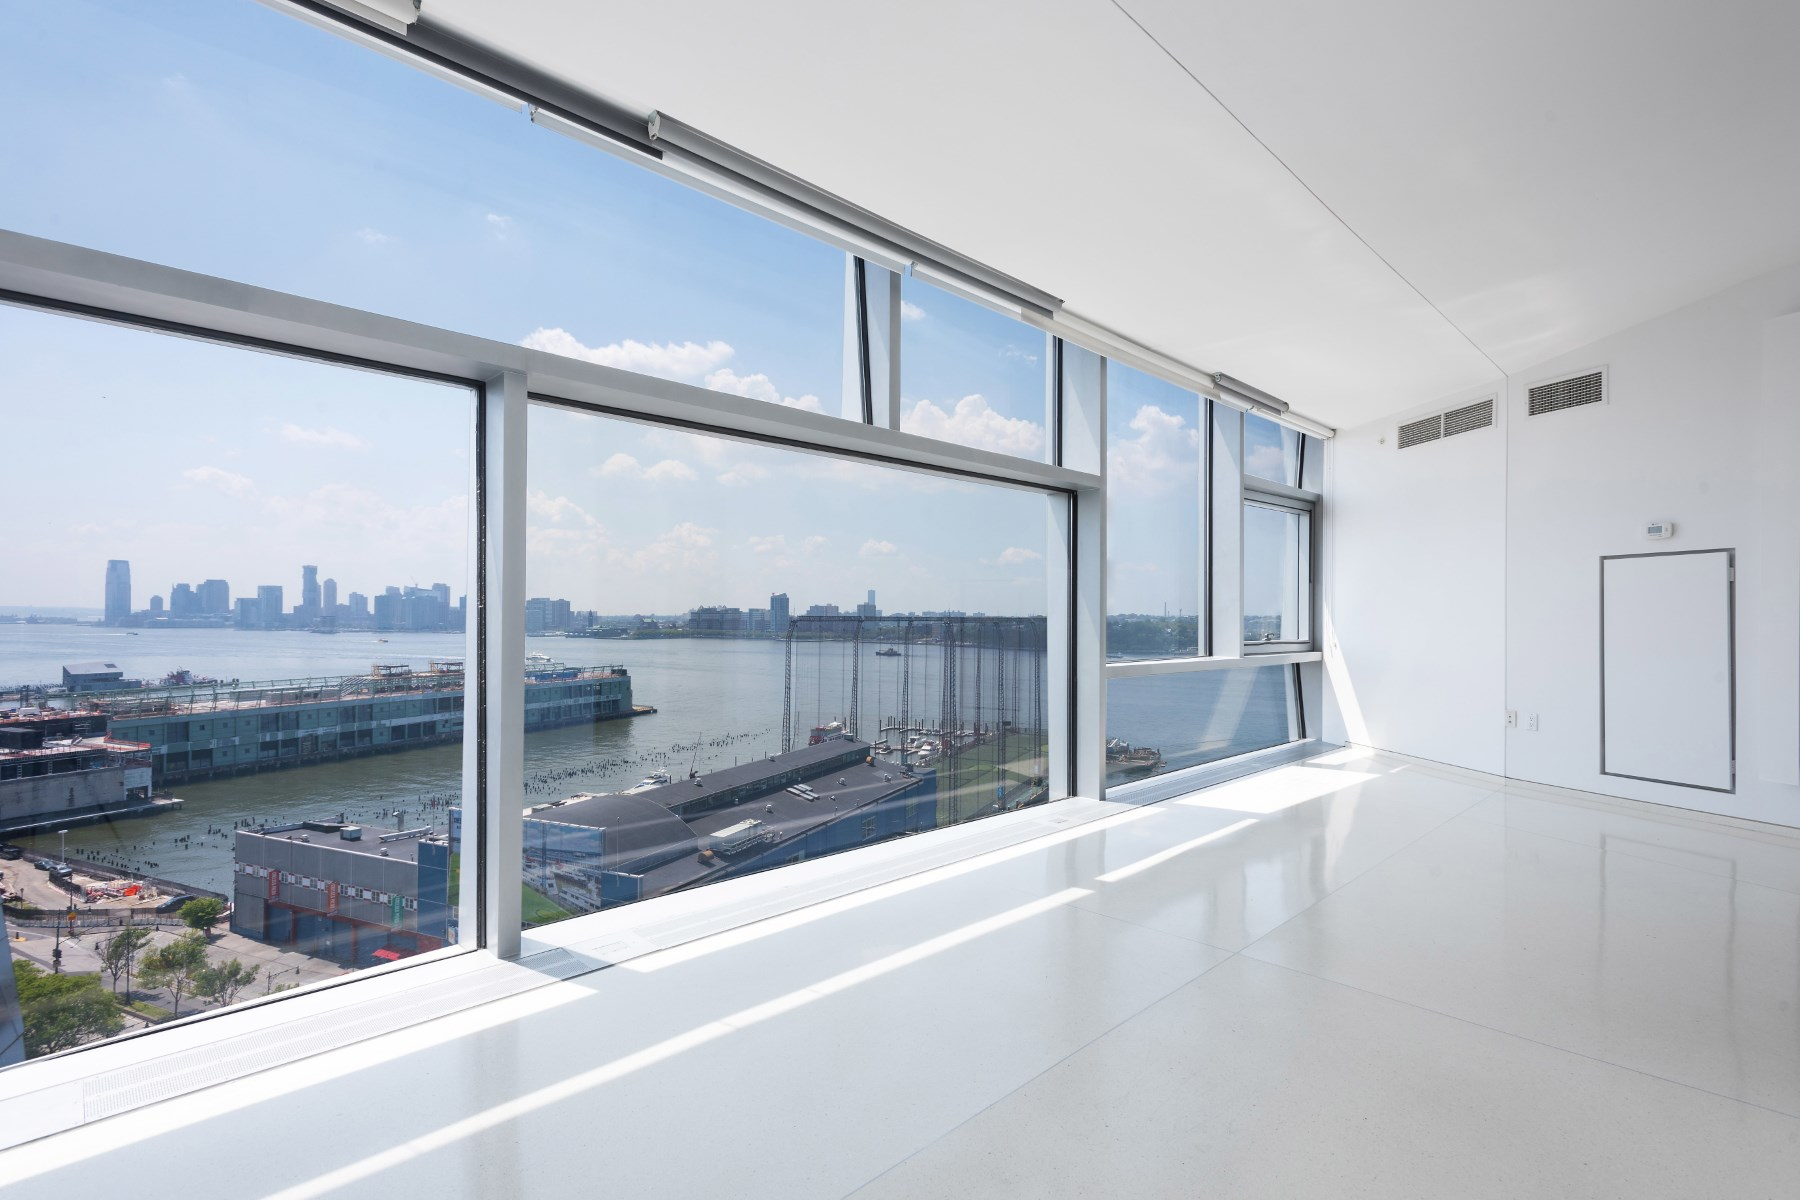 Condominium for Sale at With Respect To Light & Views 100 Eleventh Avenue Apt 16C New York, New York 10011 United States